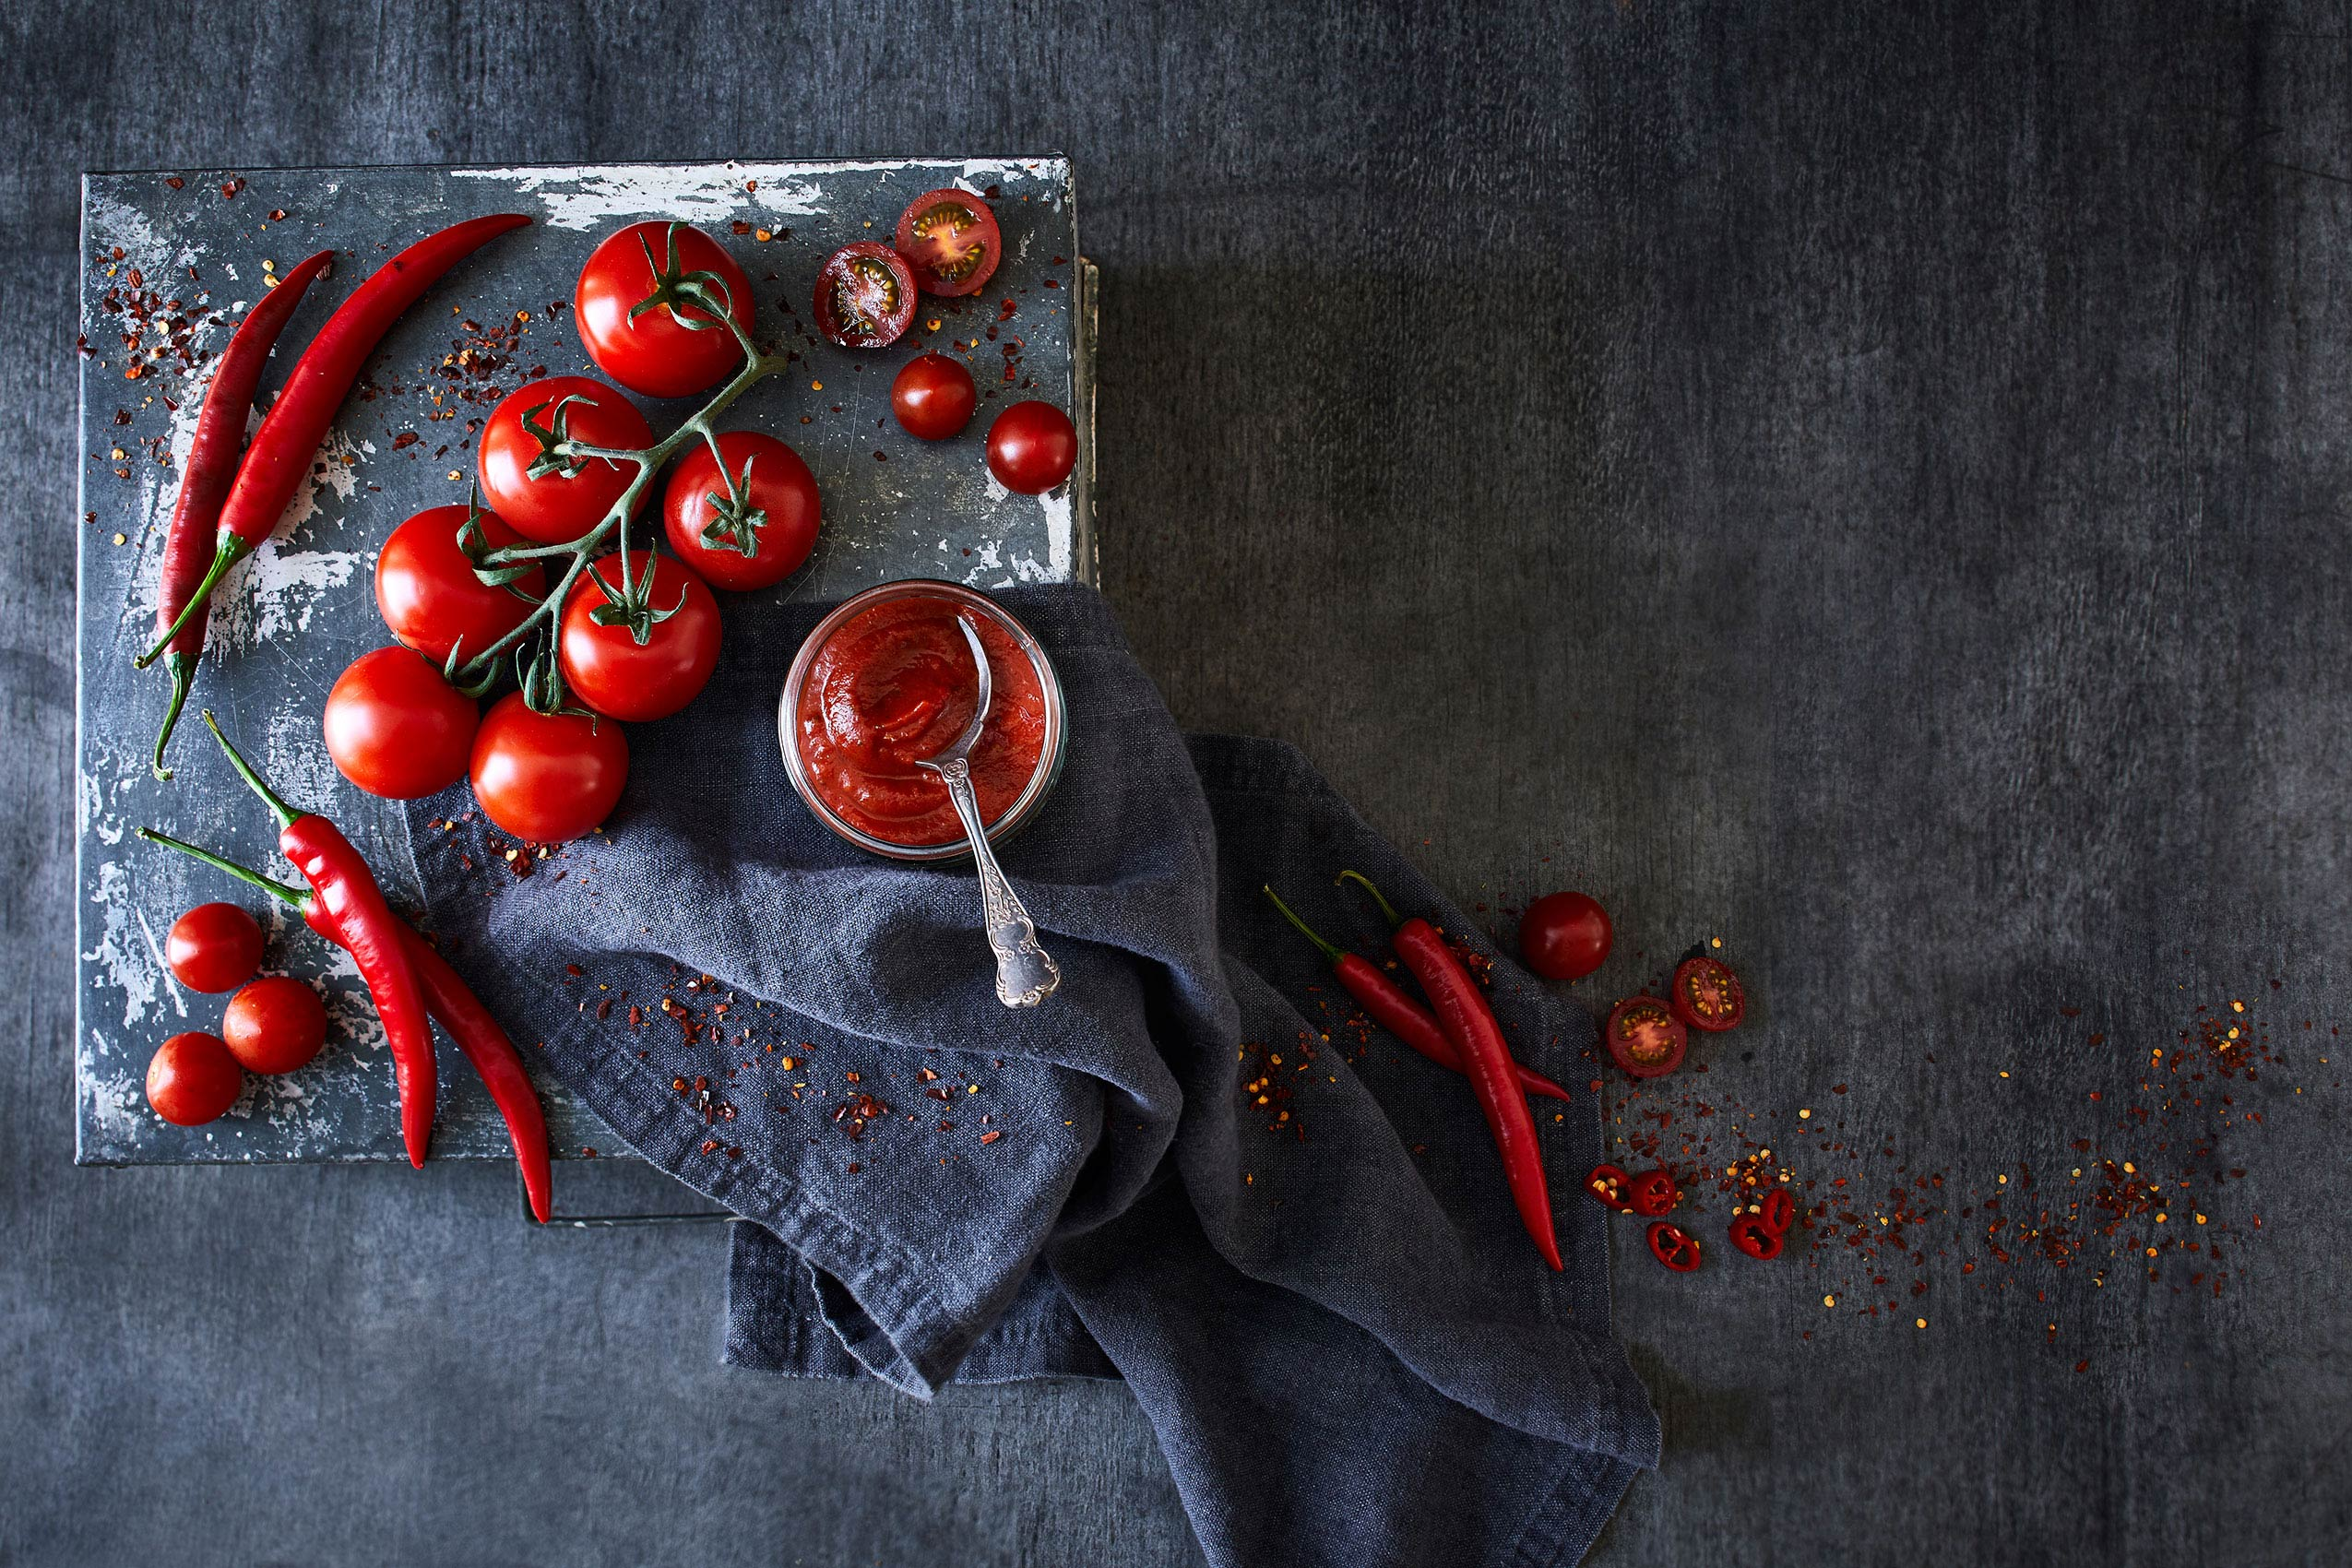 PB_MyIndianKitchen_Chapter_OnTheSide_05_books